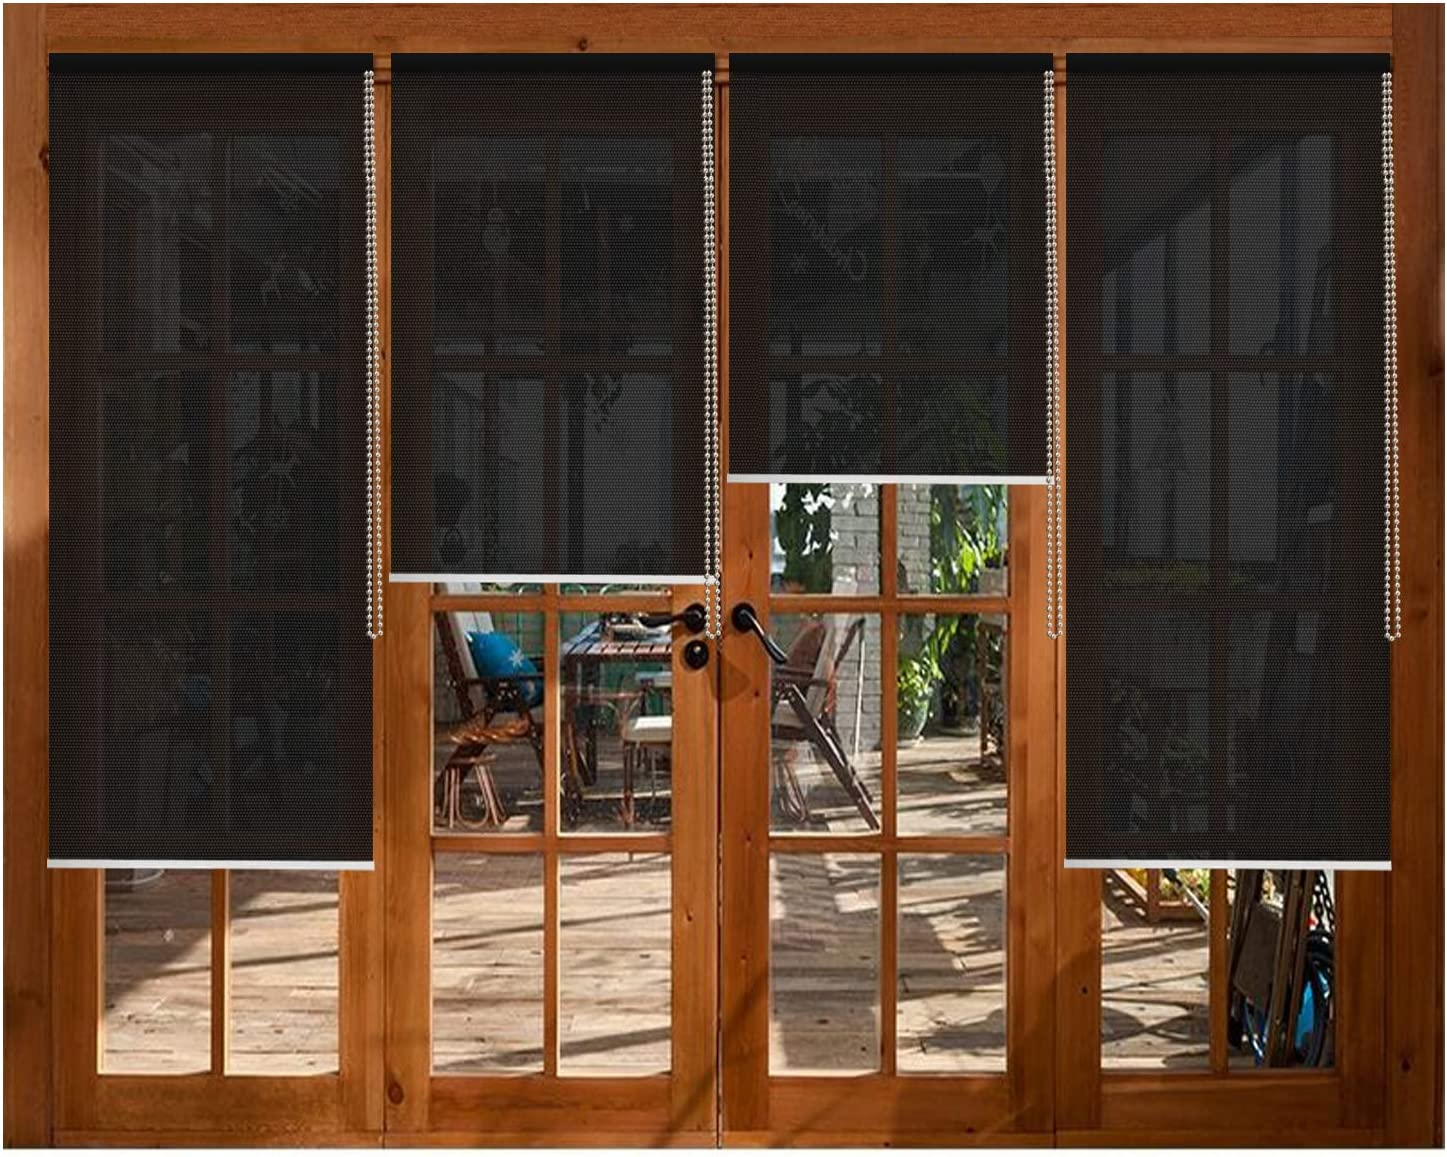 Solar SEAL limited product Window Shades Blinds Black Thermal Insula shopping Filtering Light